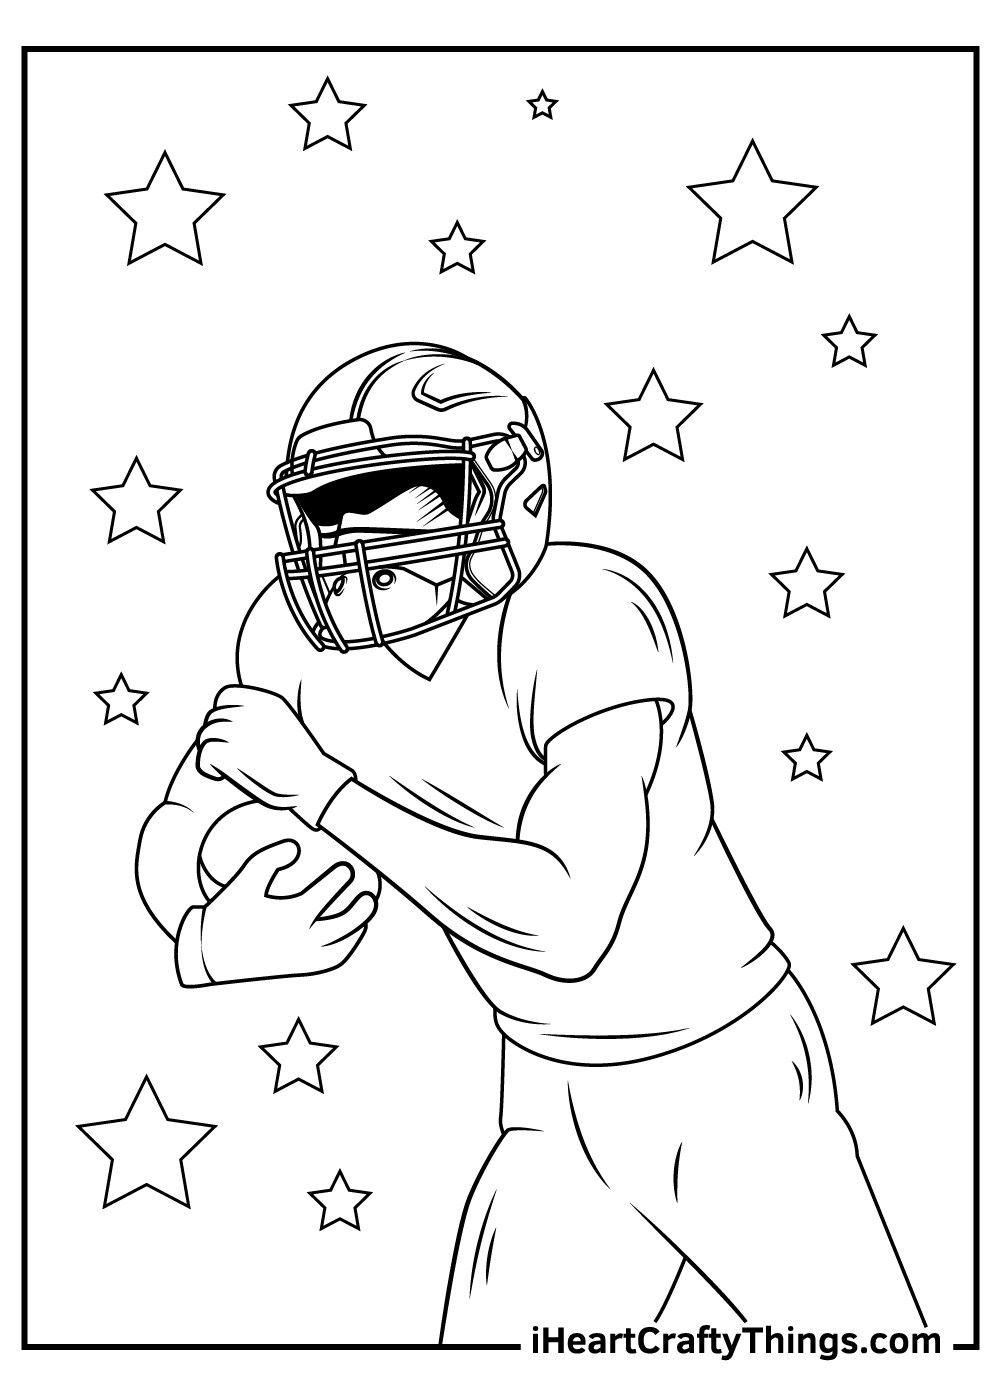 falcon NFL coloring pages printable